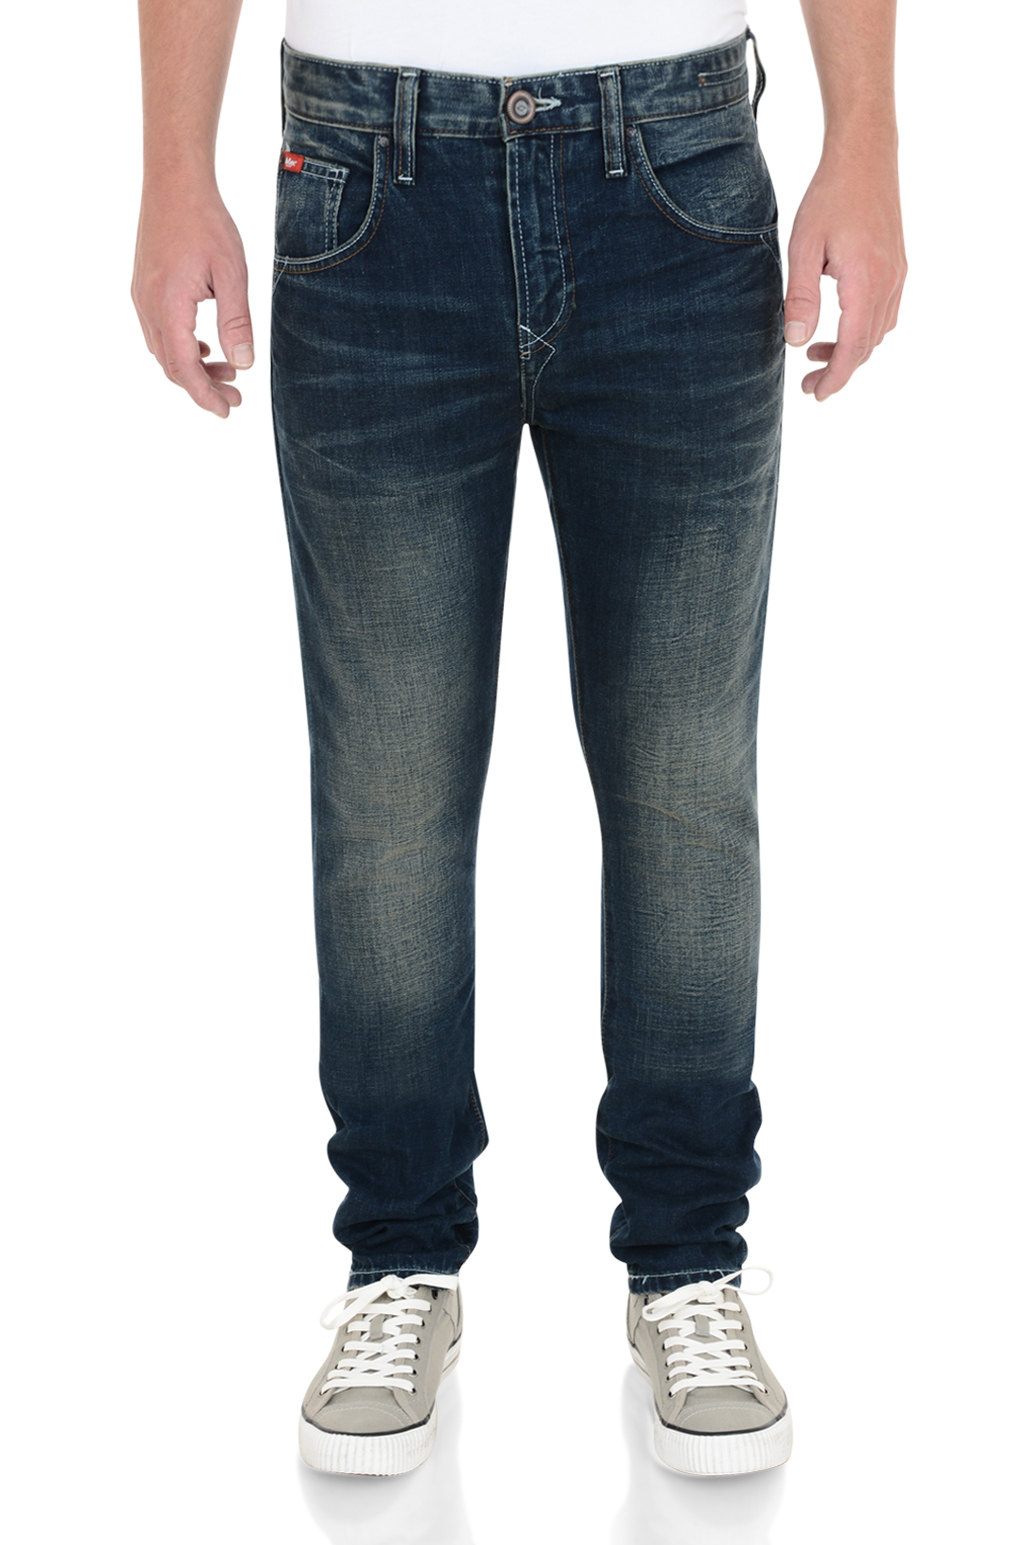 7d8aa7f1 Click on the Image to Enlarge. More Details. Lee Cooper Norris Slim Fit  men's Mid Wash jeans.